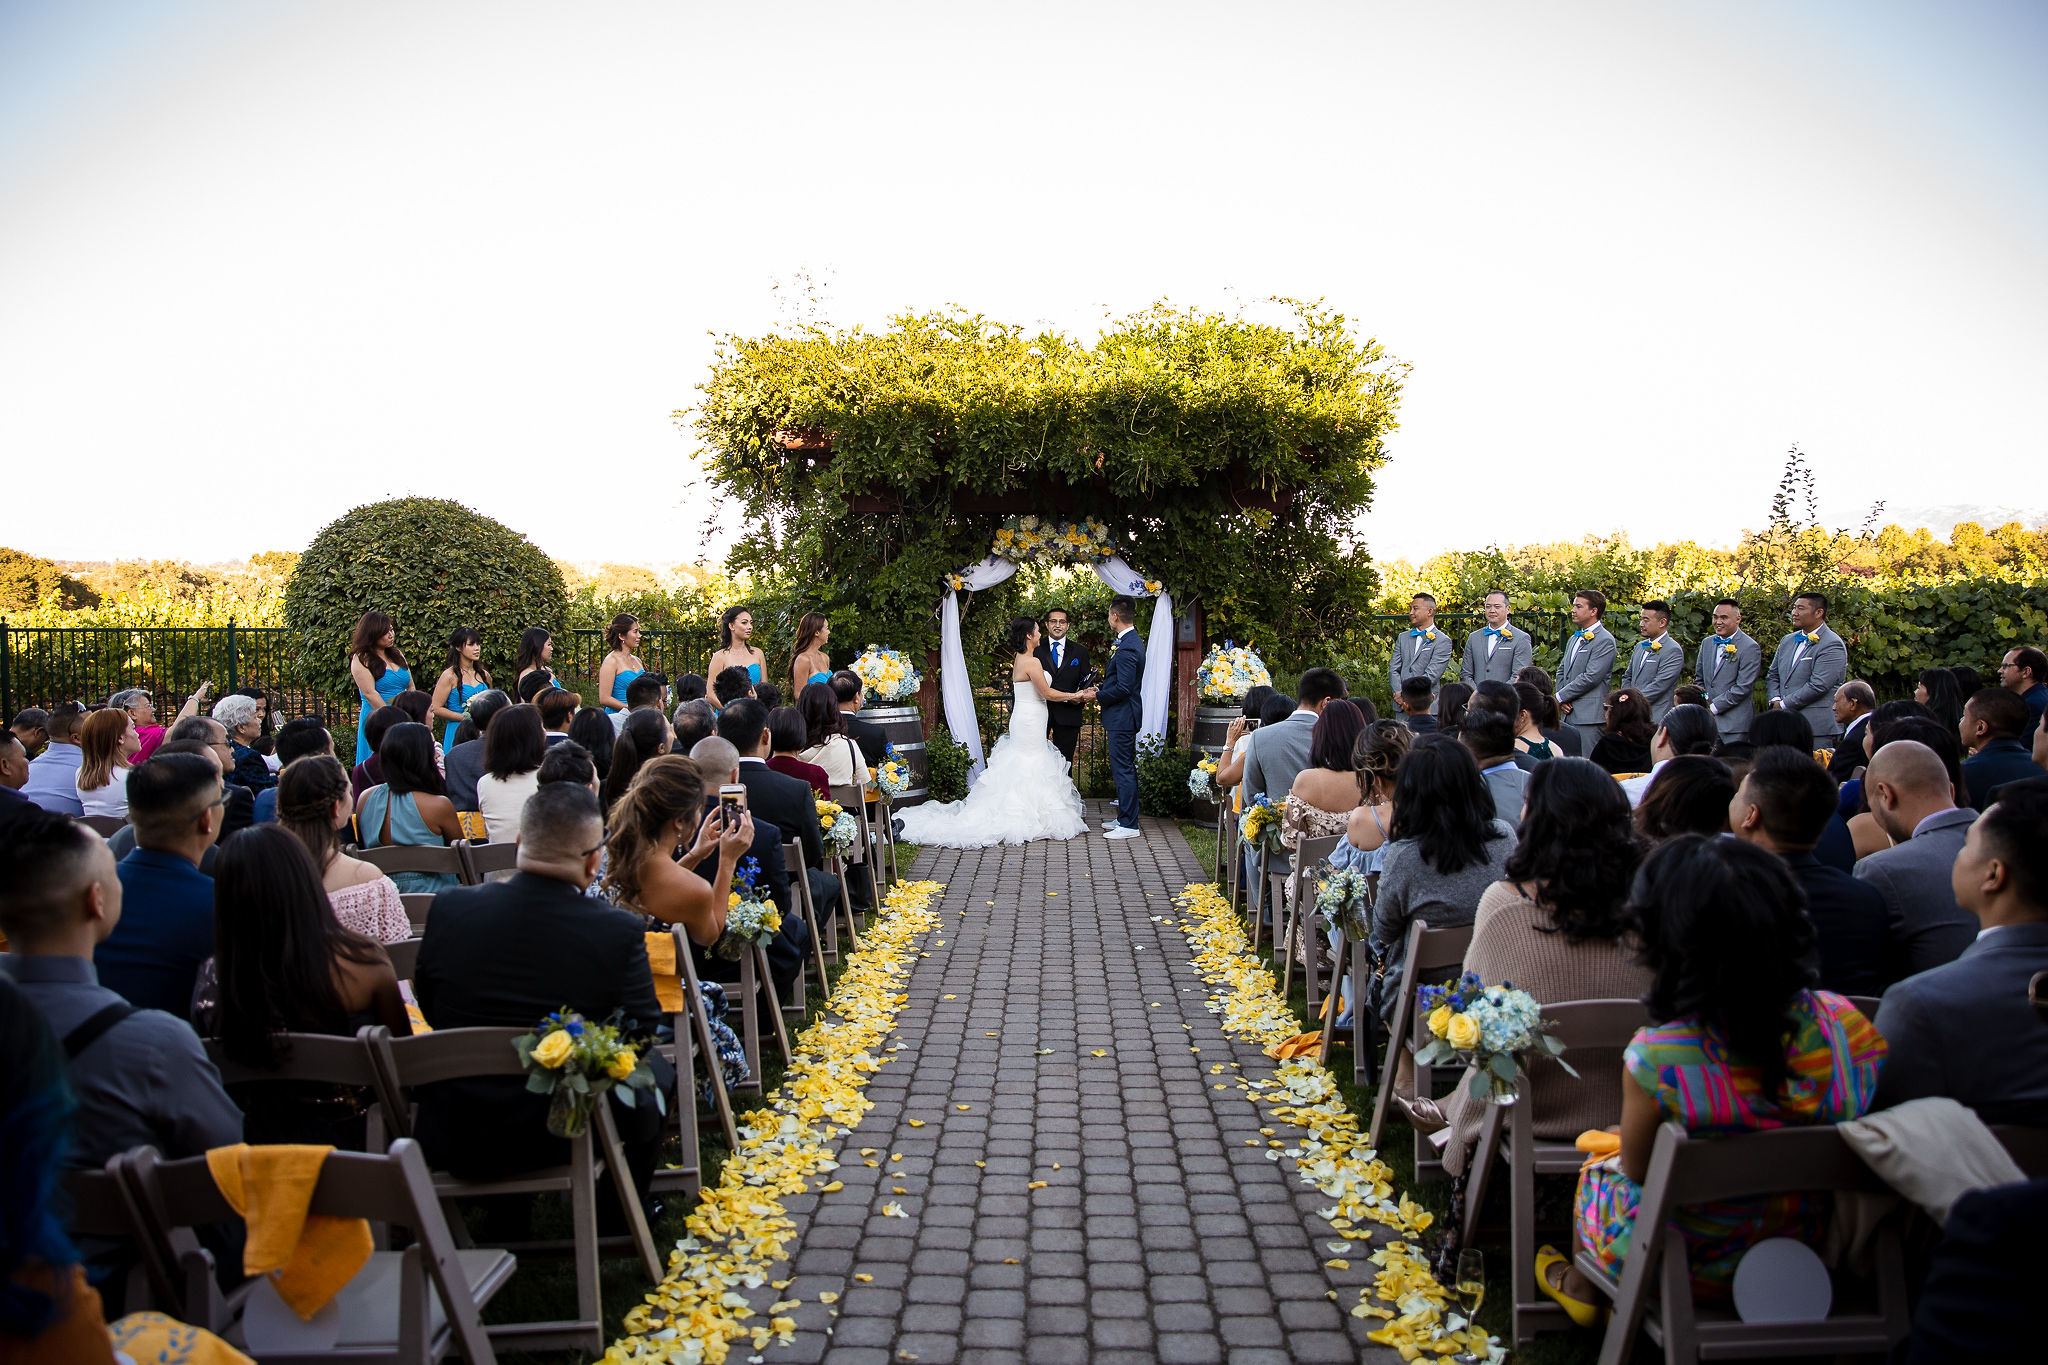 The Palm Event Center in the Vineyard, located in Pleasanton, CA, is one of the premiere venues in the East Bay. We love the lush arches for the ceremony, conveniently located just outside the dining reception area.